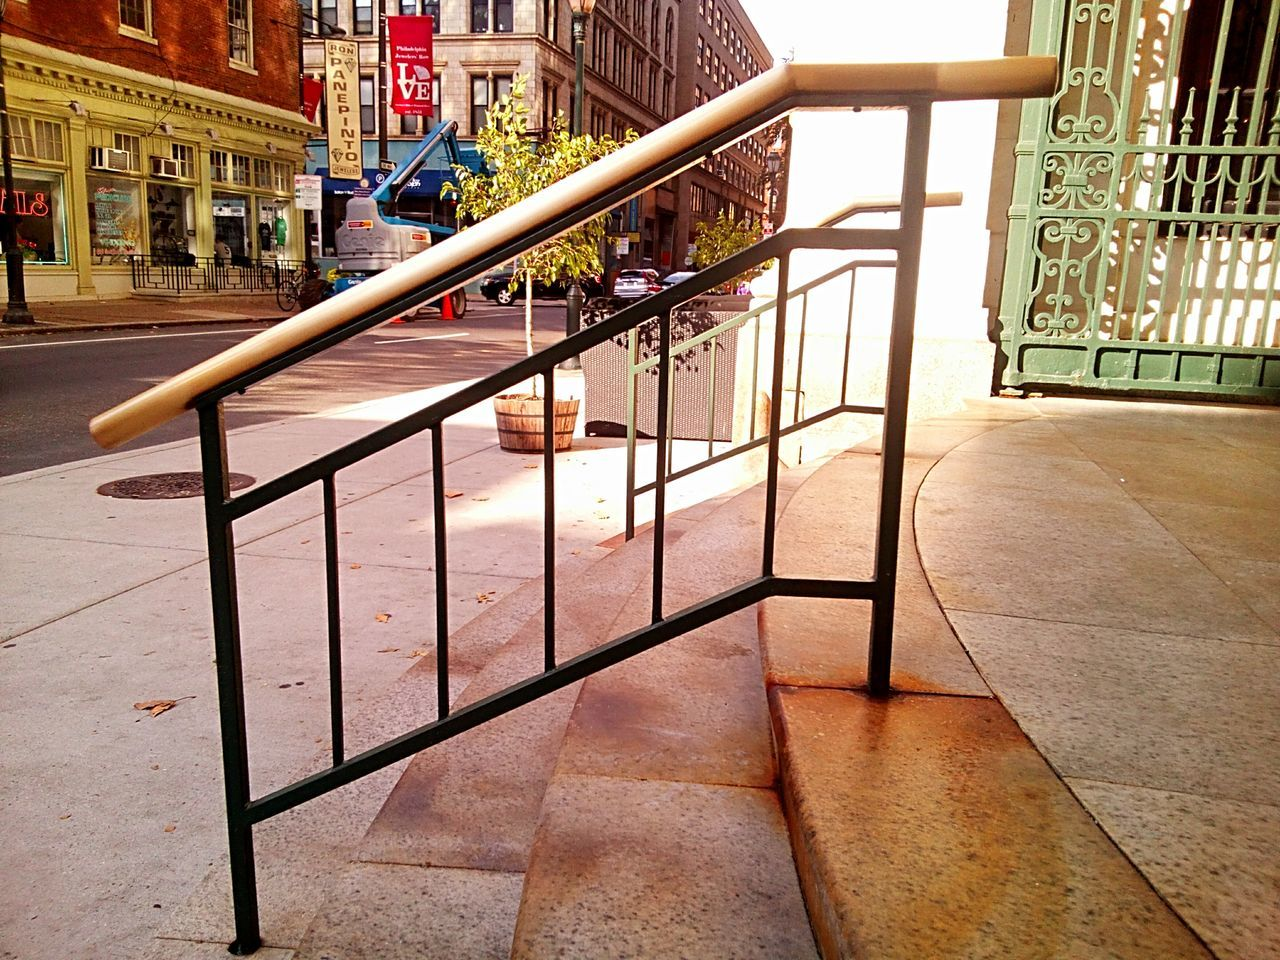 architecture, railing, built structure, no people, building exterior, day, outdoors, city